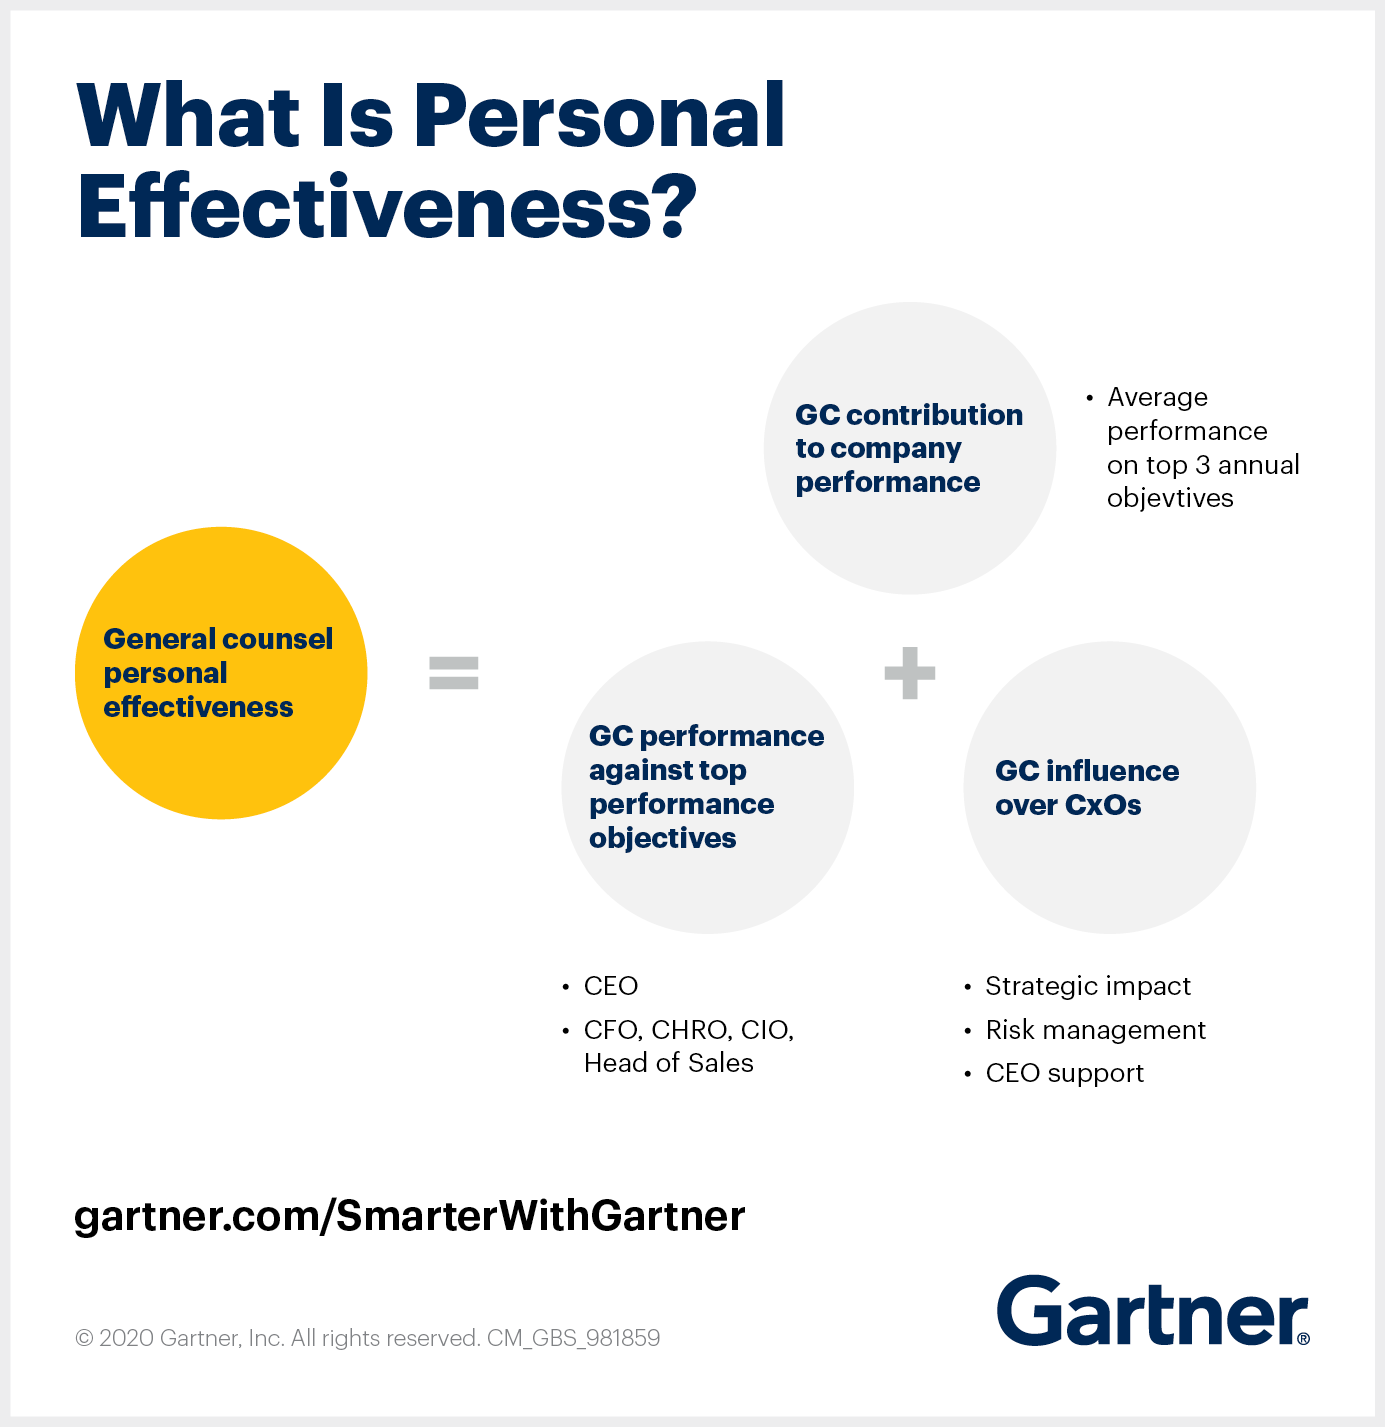 Gartner shares the traits of an effective general counsel